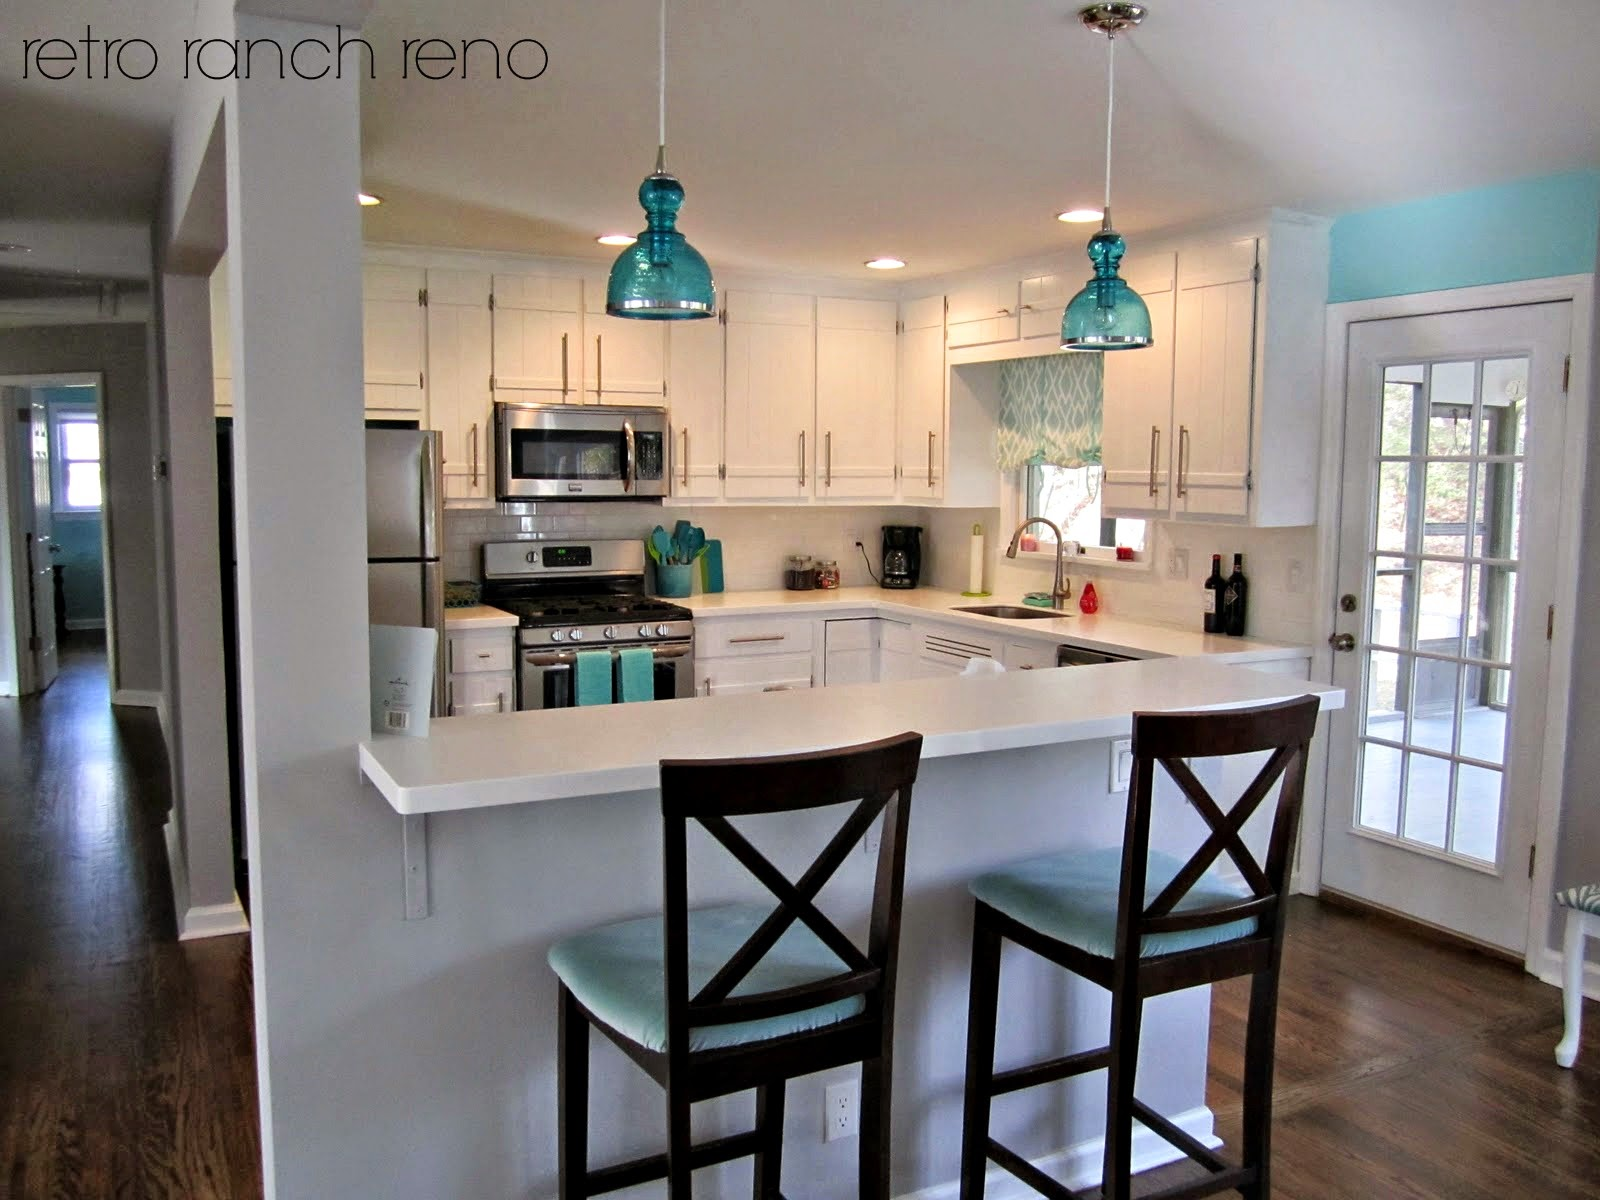 Retro Ranch Reno Kitchen Dreaming With A Little Help From Cabinets Direct Usa